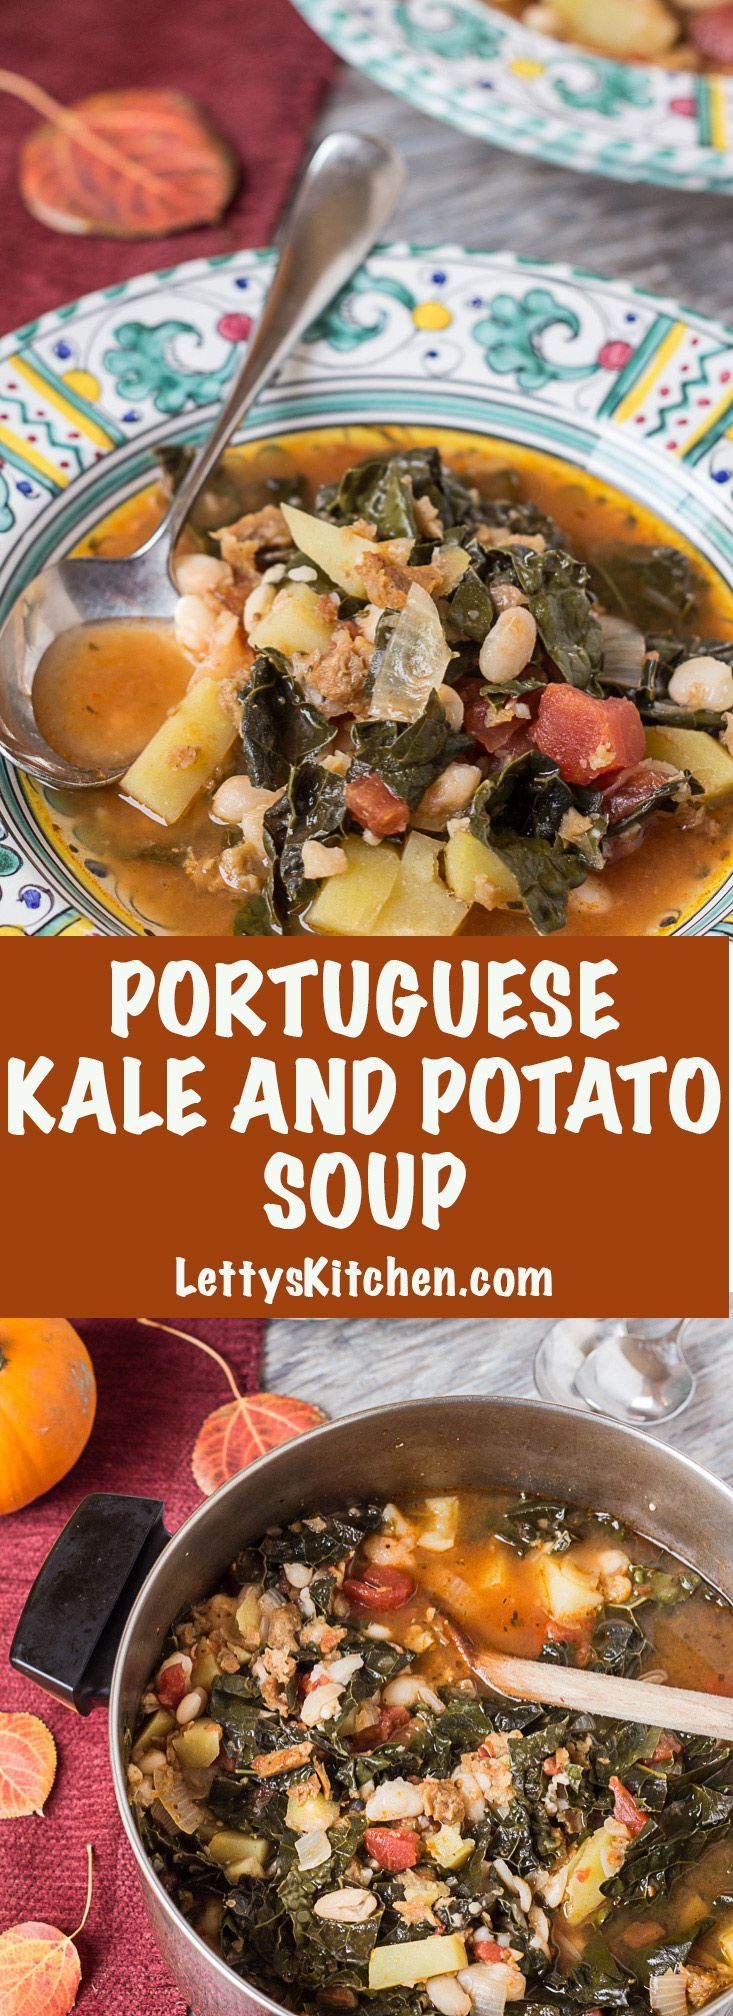 """Warming vegan recipe for Portuguese Kale and Potato Soup, with white beans and faux """"sausage"""" is THE best. [from LettysKitchen.com]"""